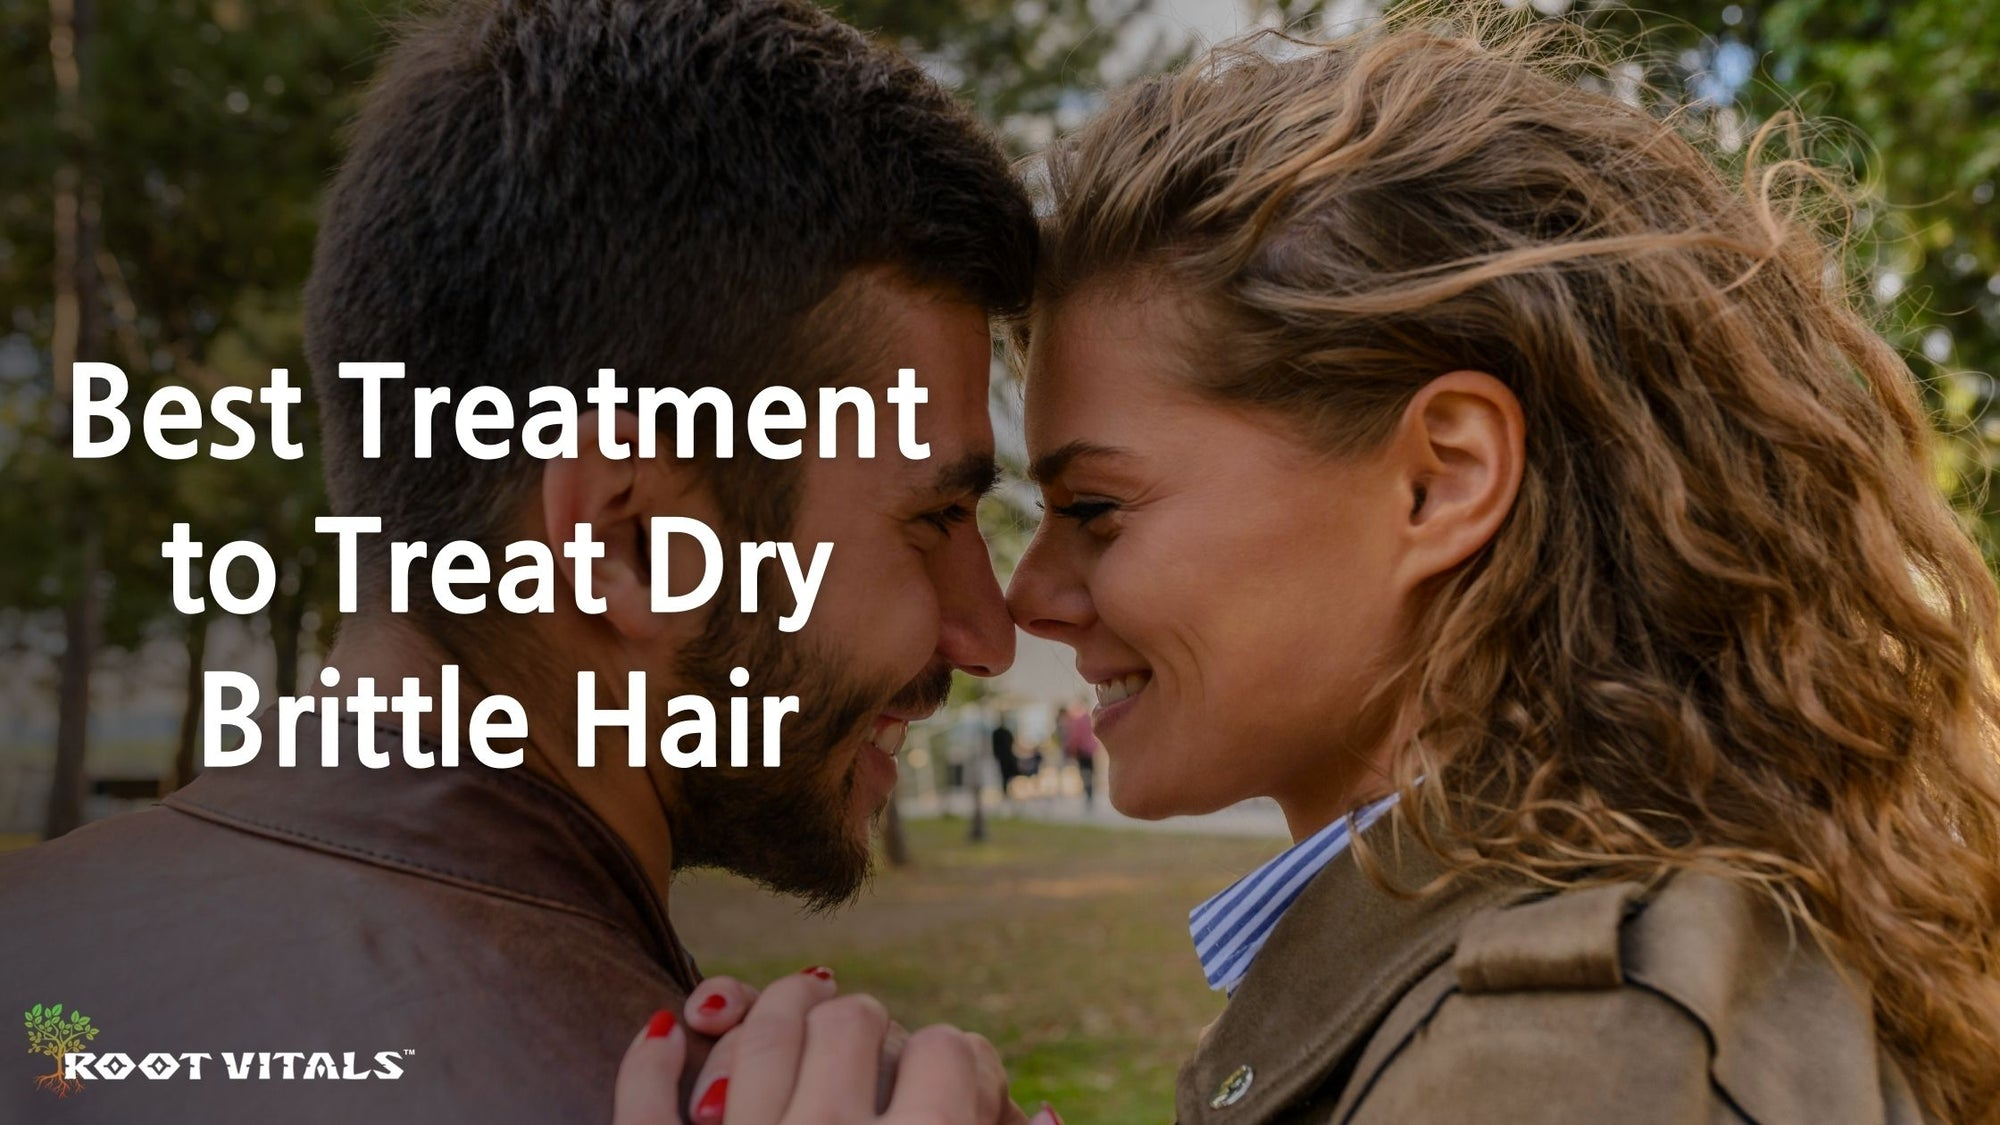 Best treatment options to treat dry brittle hair